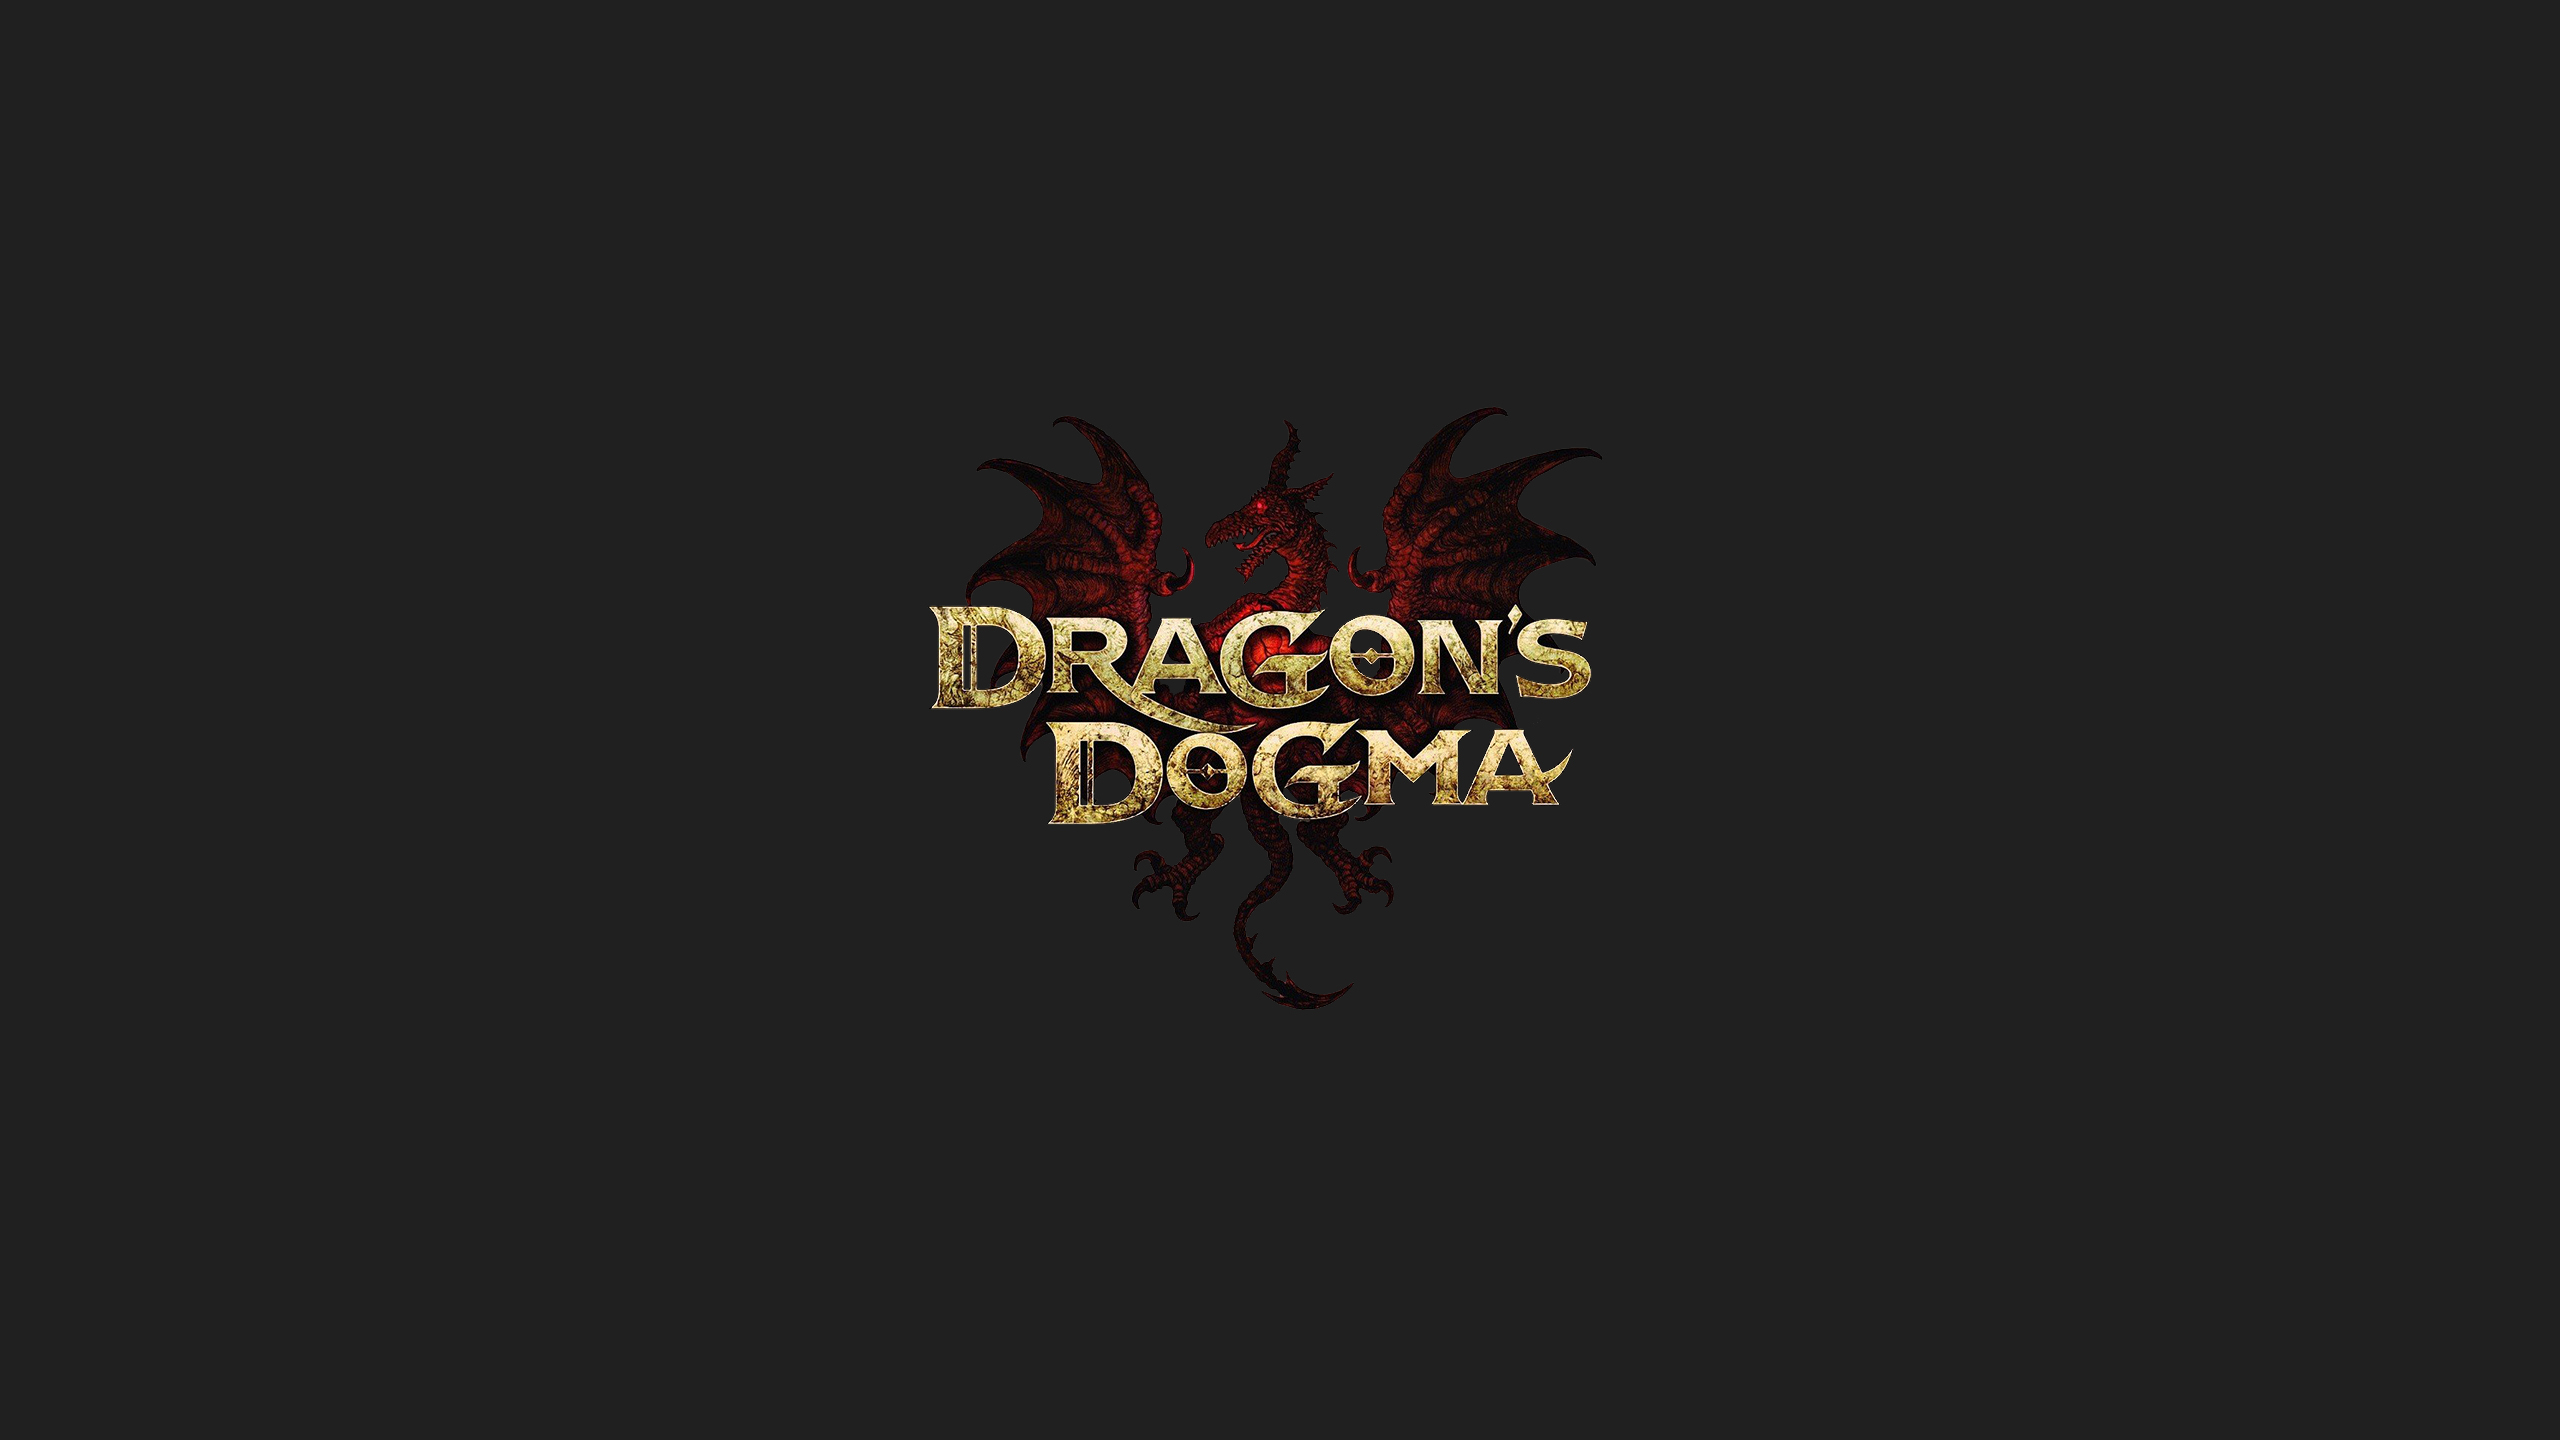 Dragons Dogma Dark Arisen Fondo De Pantalla 2k Quad Hd Id4471